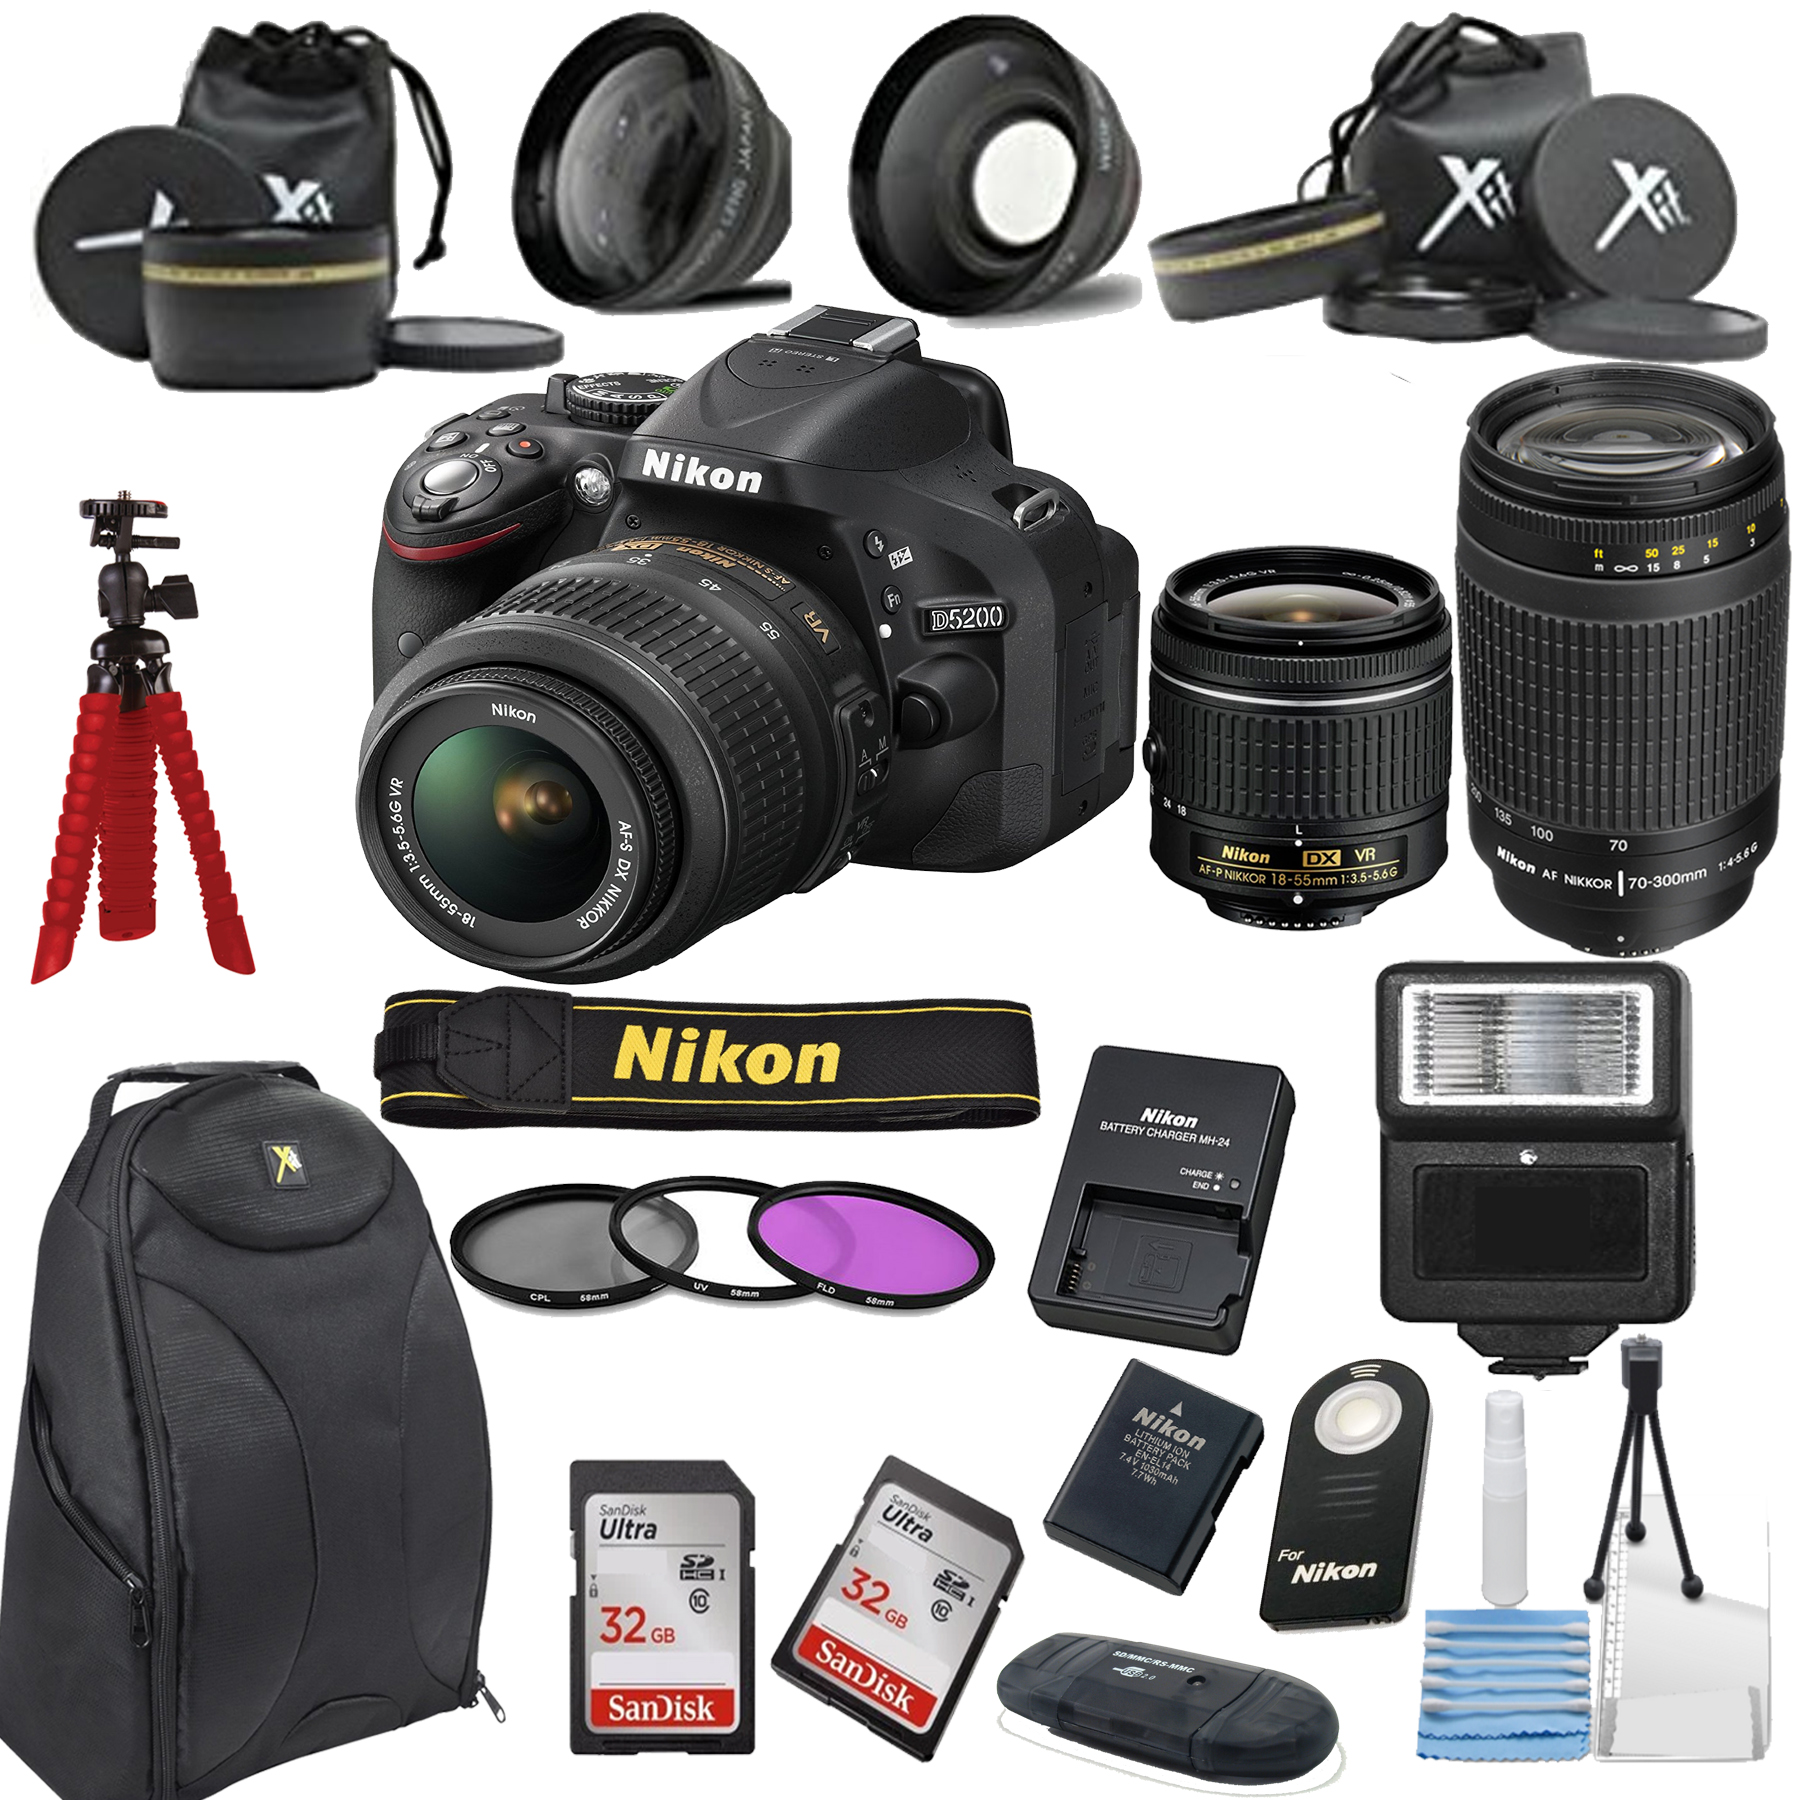 Nikon D5200 24.1 MP DSLR Camera + 18-55mm VR Lens Kit + 7...